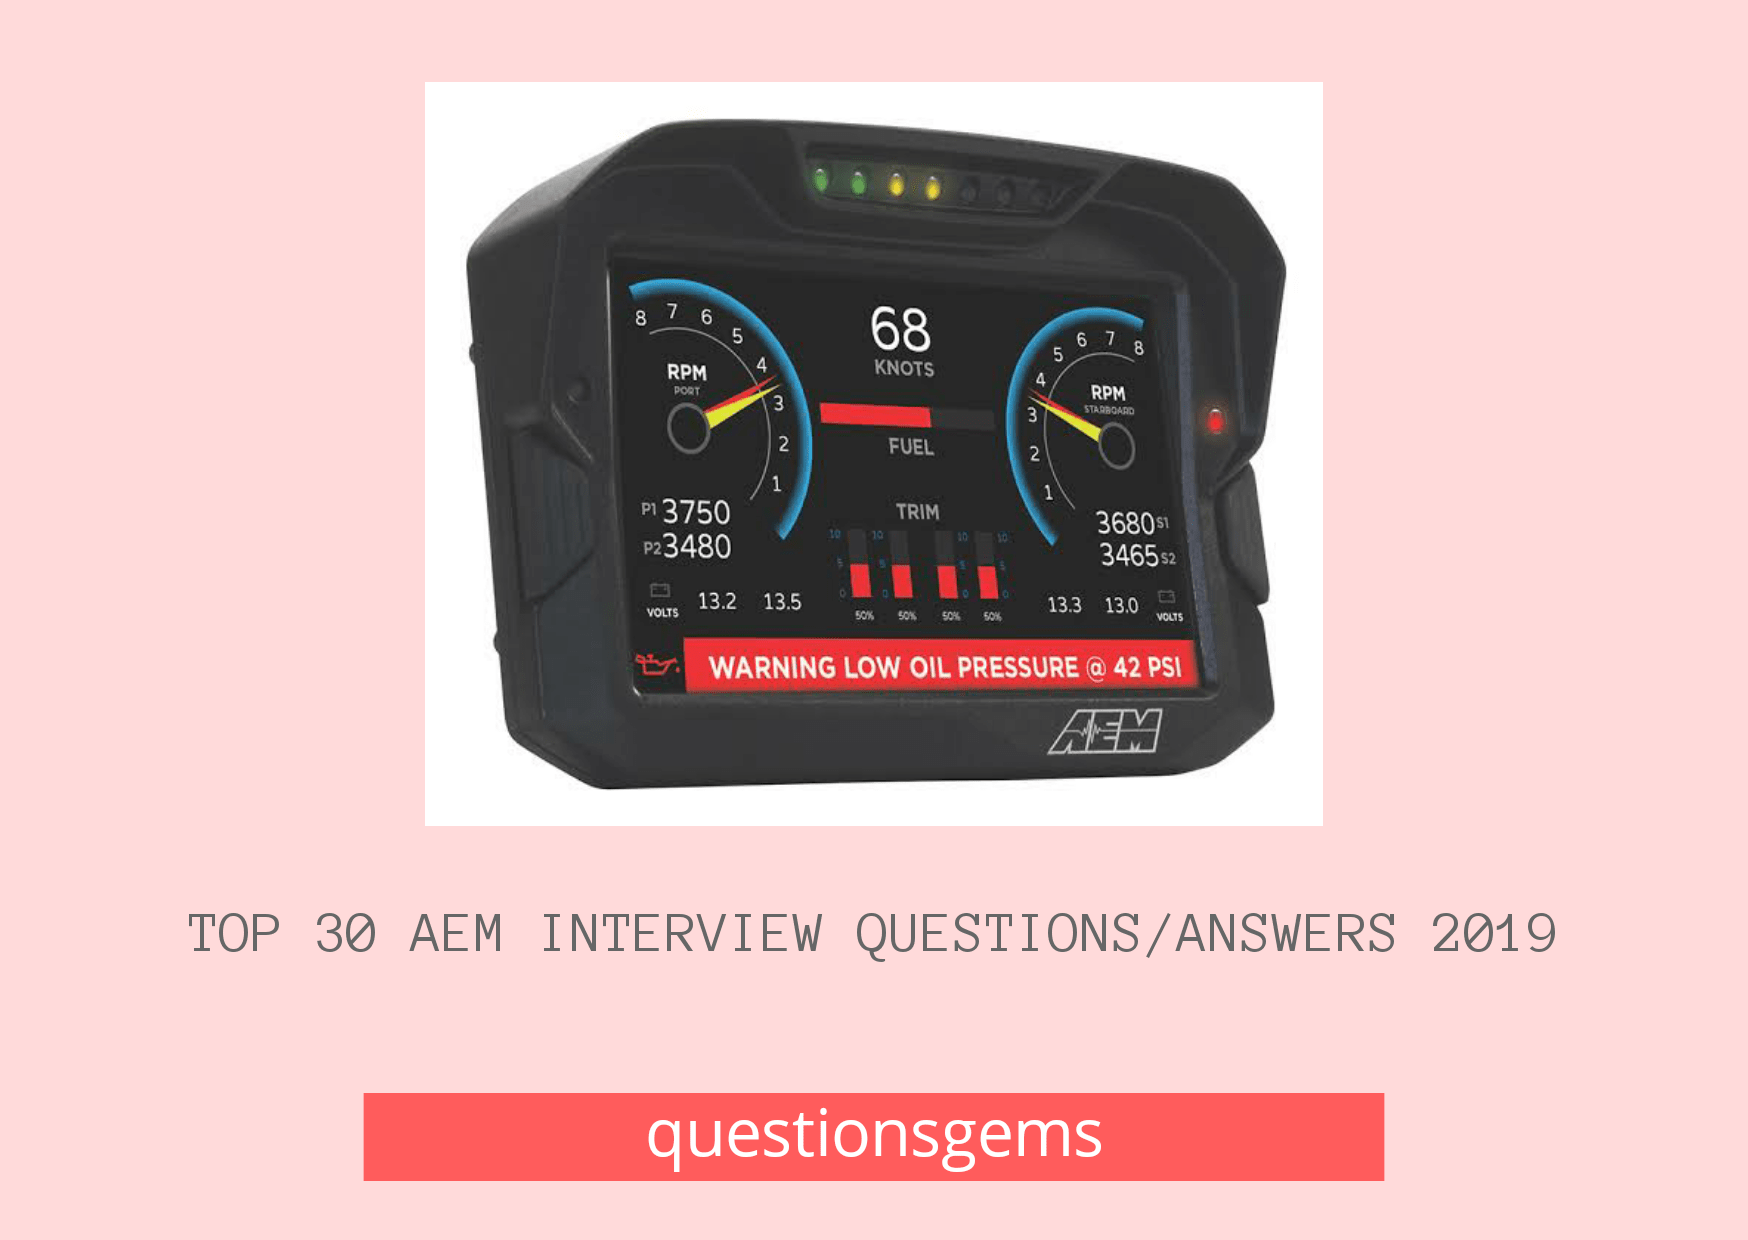 AEM Interview Questions And Answers 2019